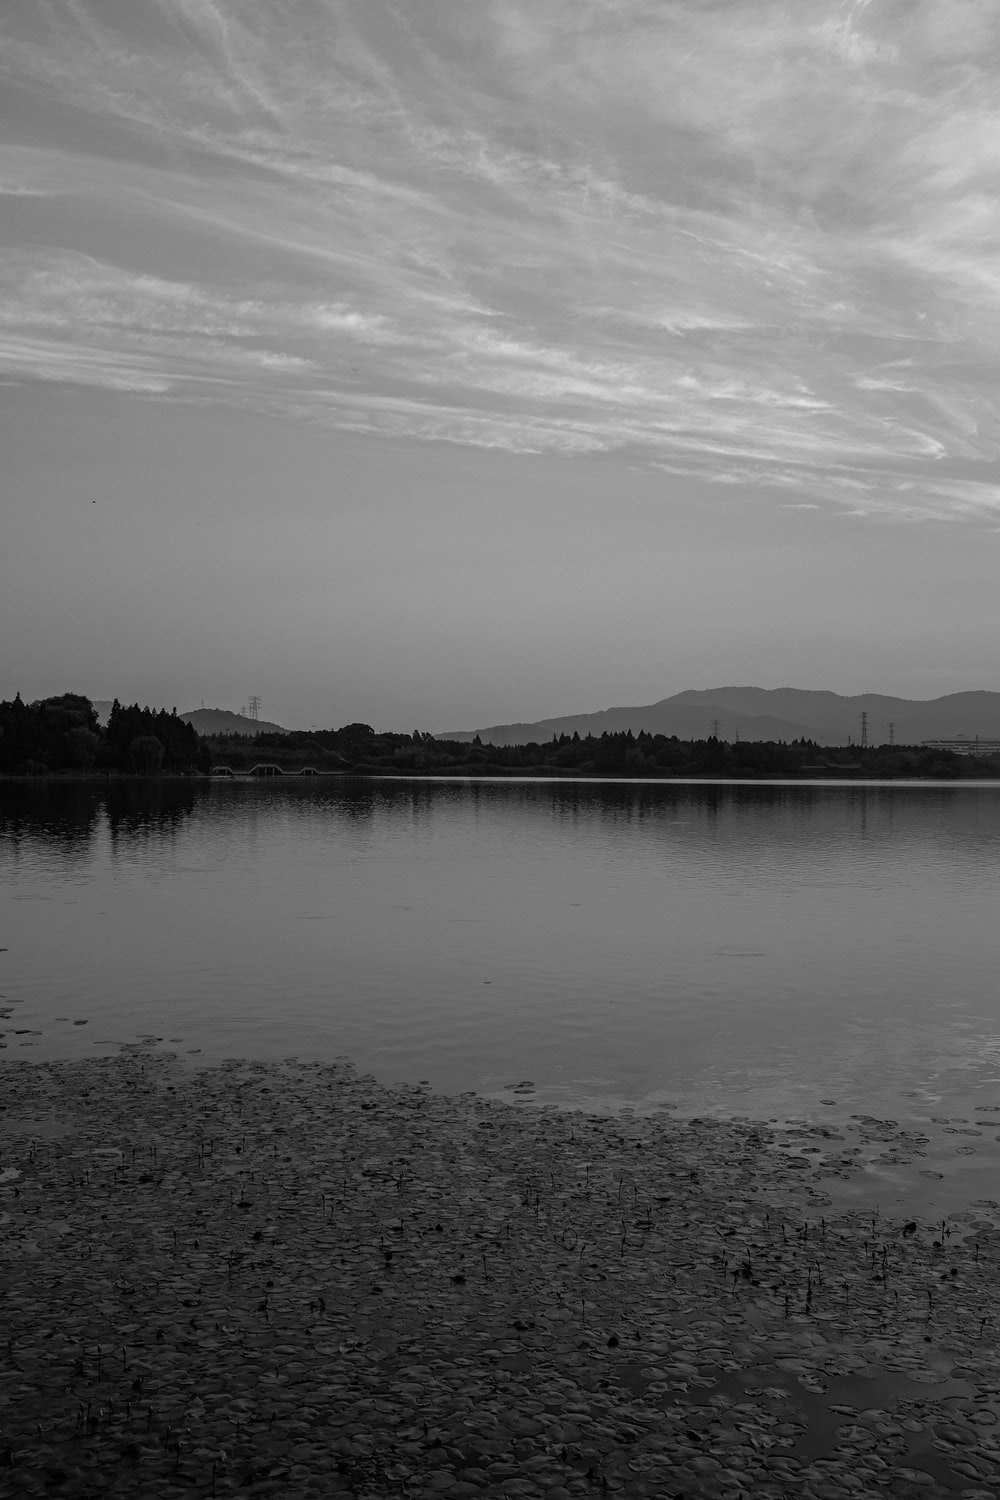 grayscale photo of body of water near mountain